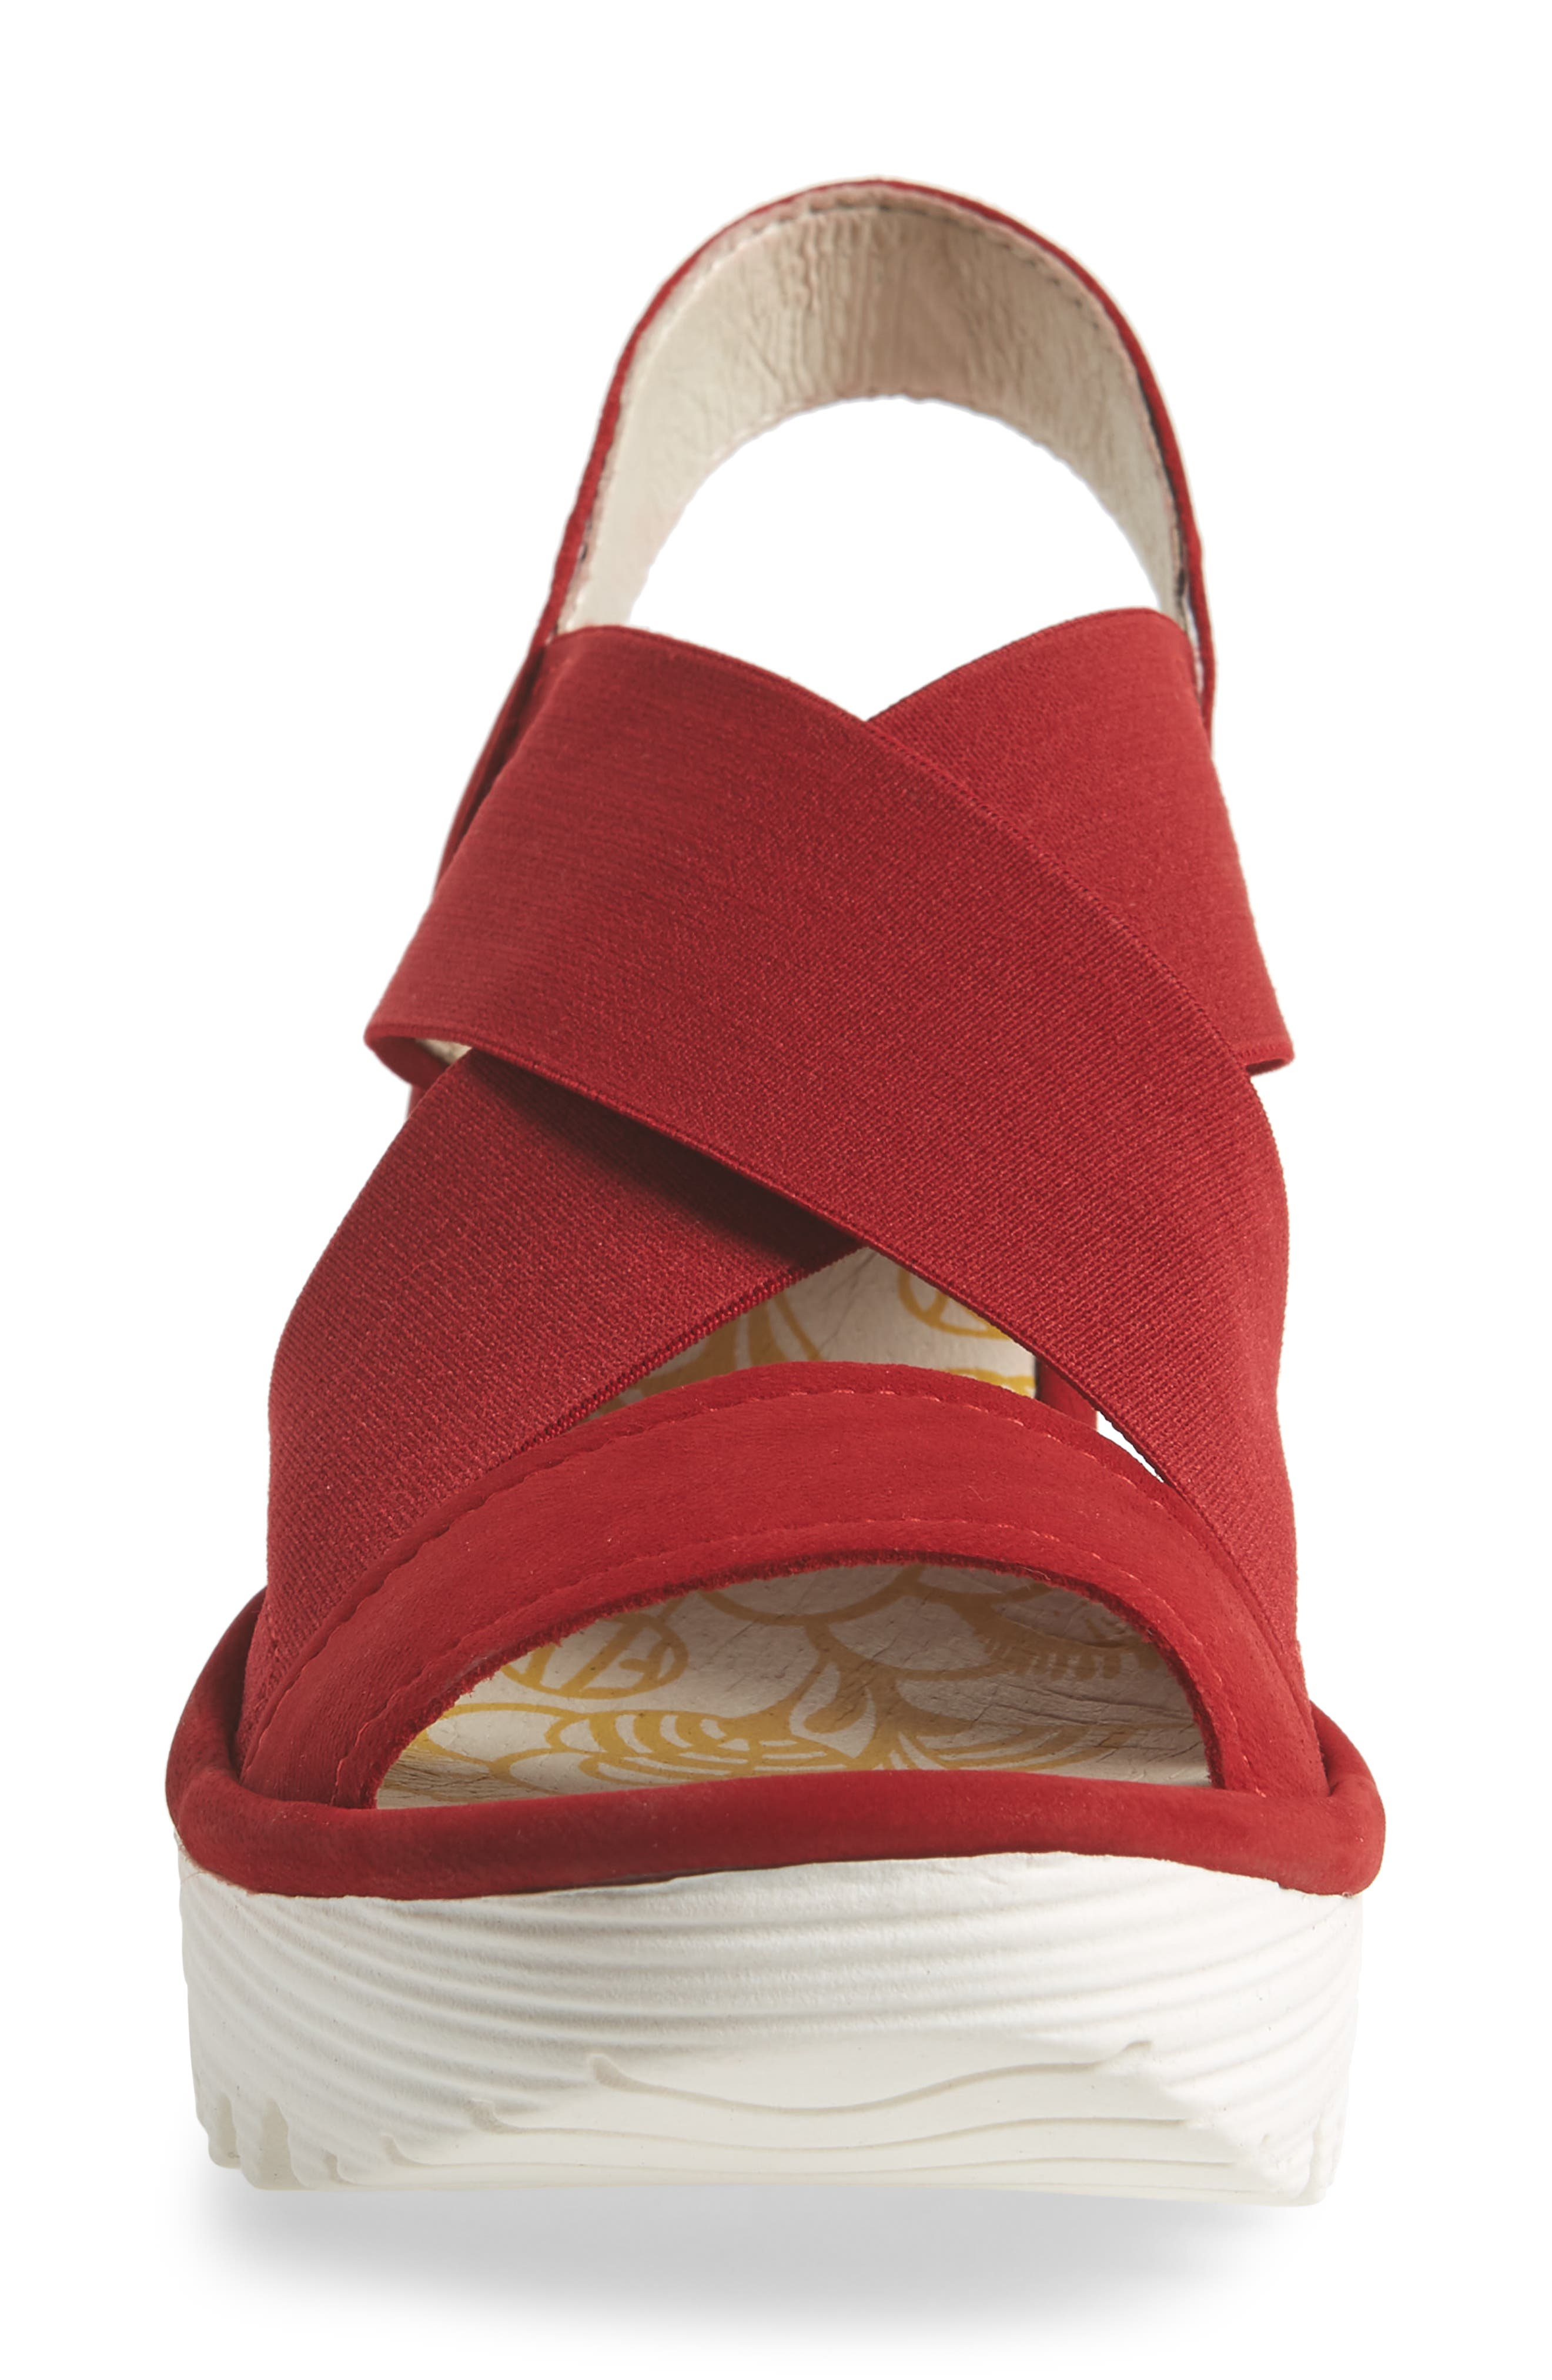 Yaji Cross Wedge Sandal,                             Alternate thumbnail 4, color,                             RED LEATHER